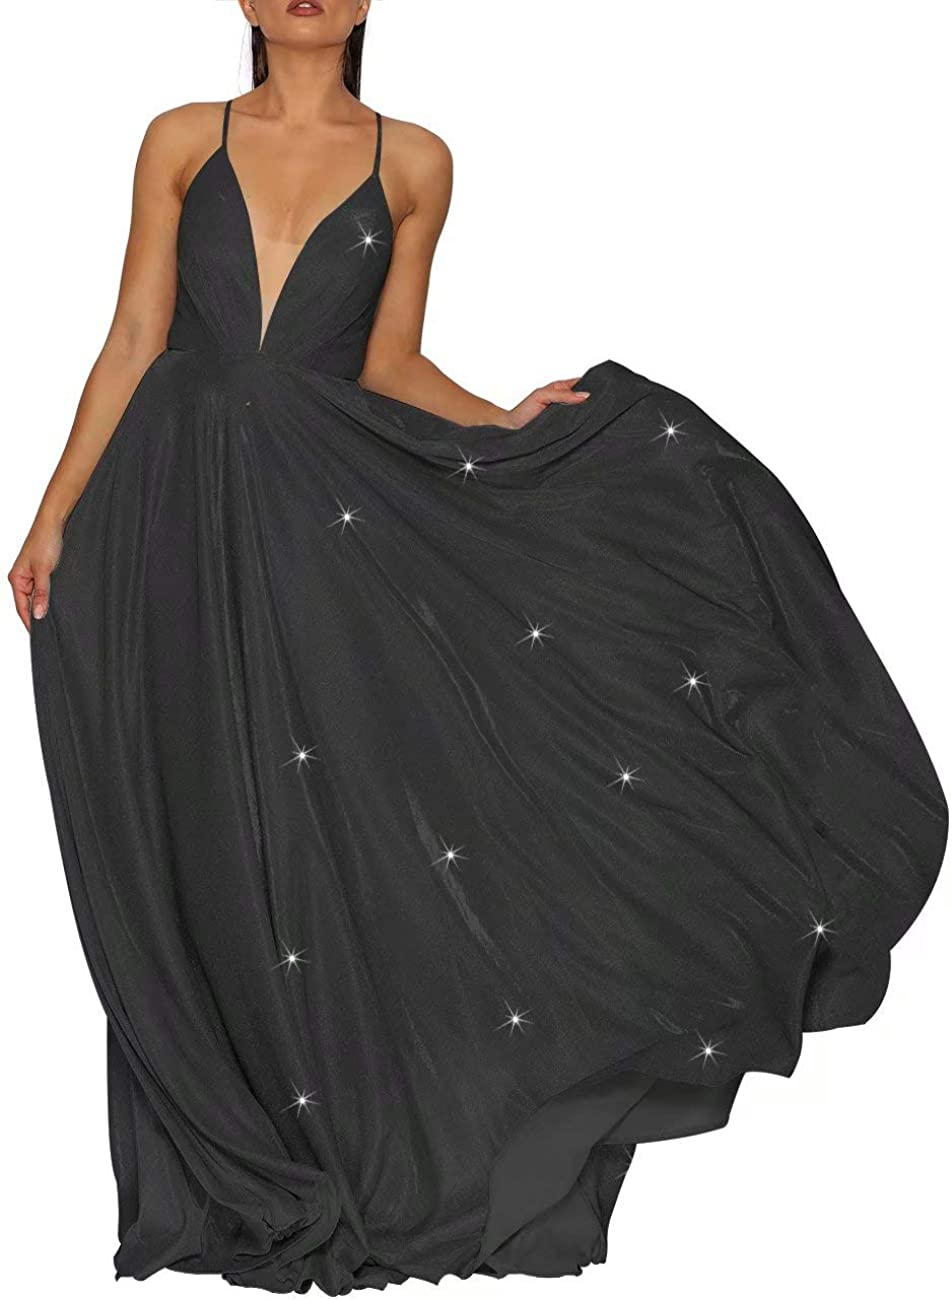 Leeskoot-Glittery Prom Dress Long Backless Spaghetti Strap Shimmering Evening Ball Gown